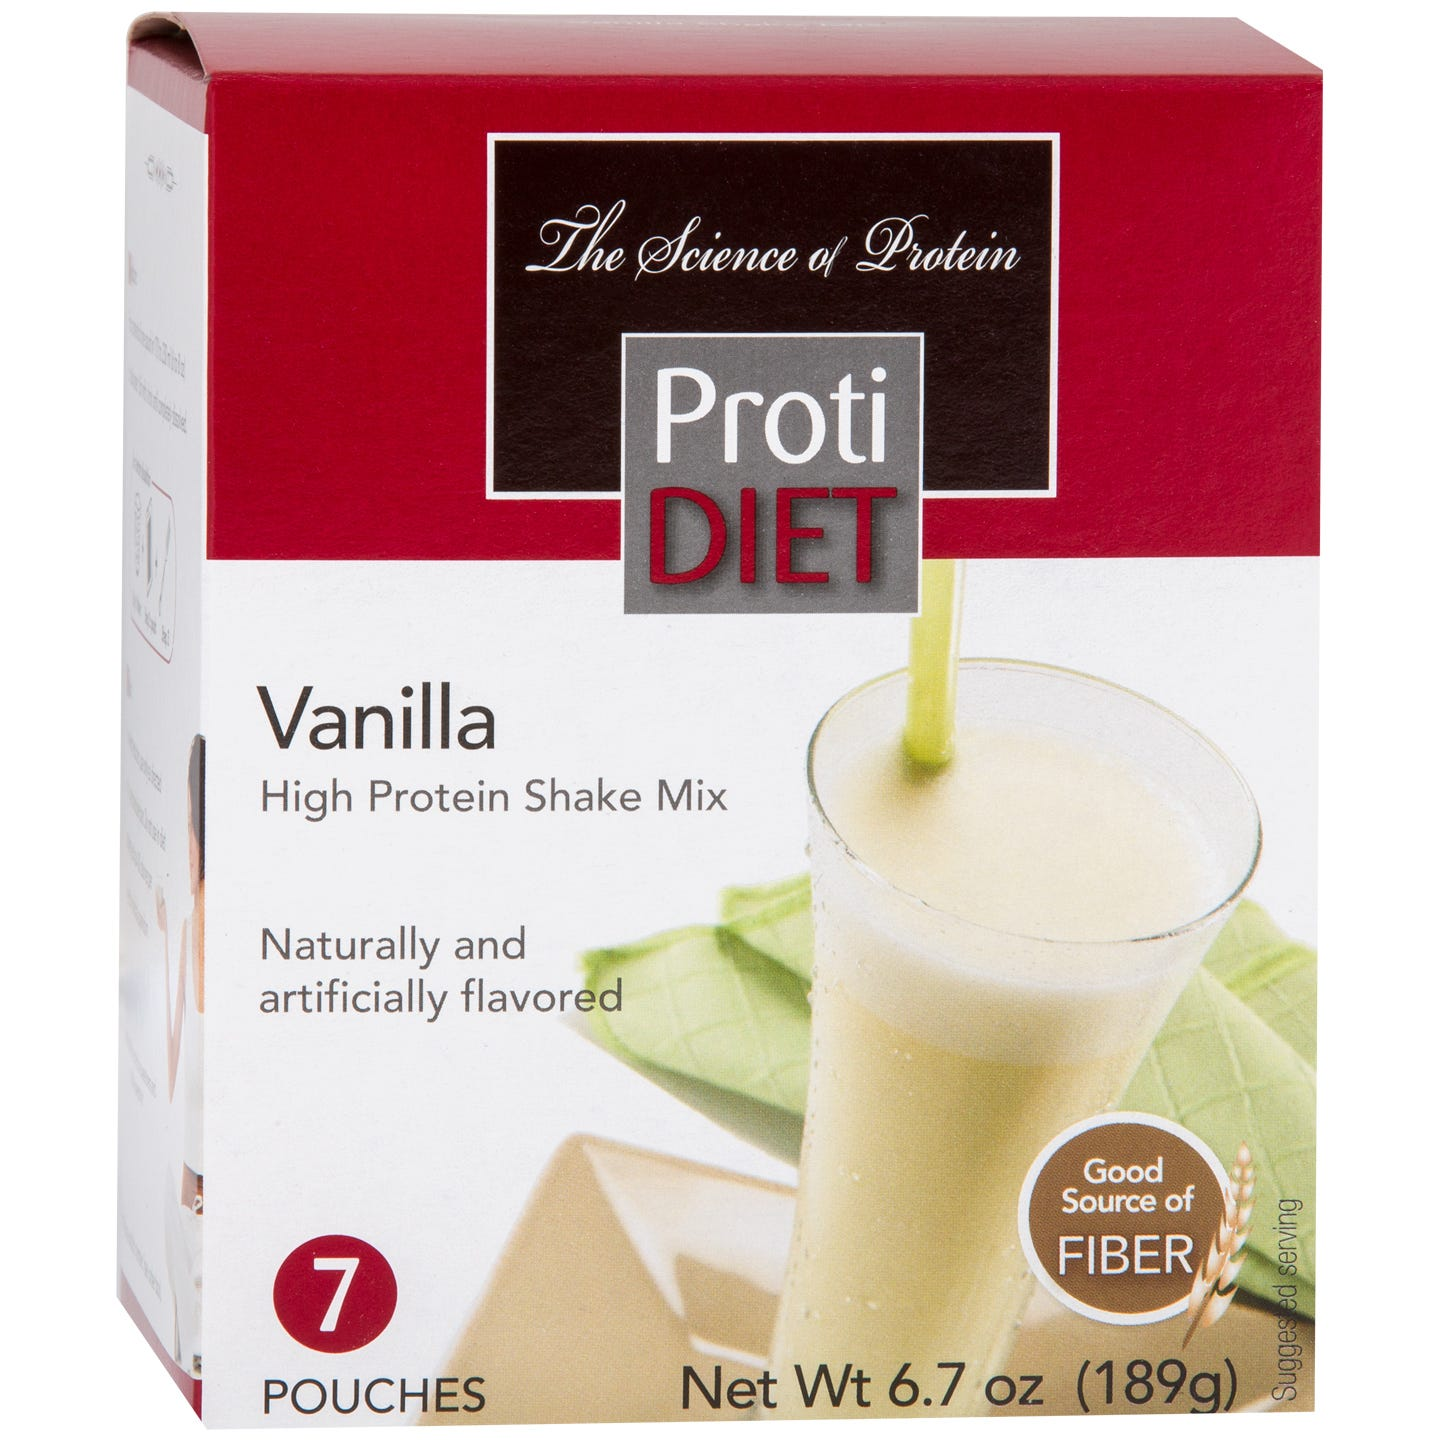 High Protein Shake Mix Vanilla (7 Ct) - ProtiDiet